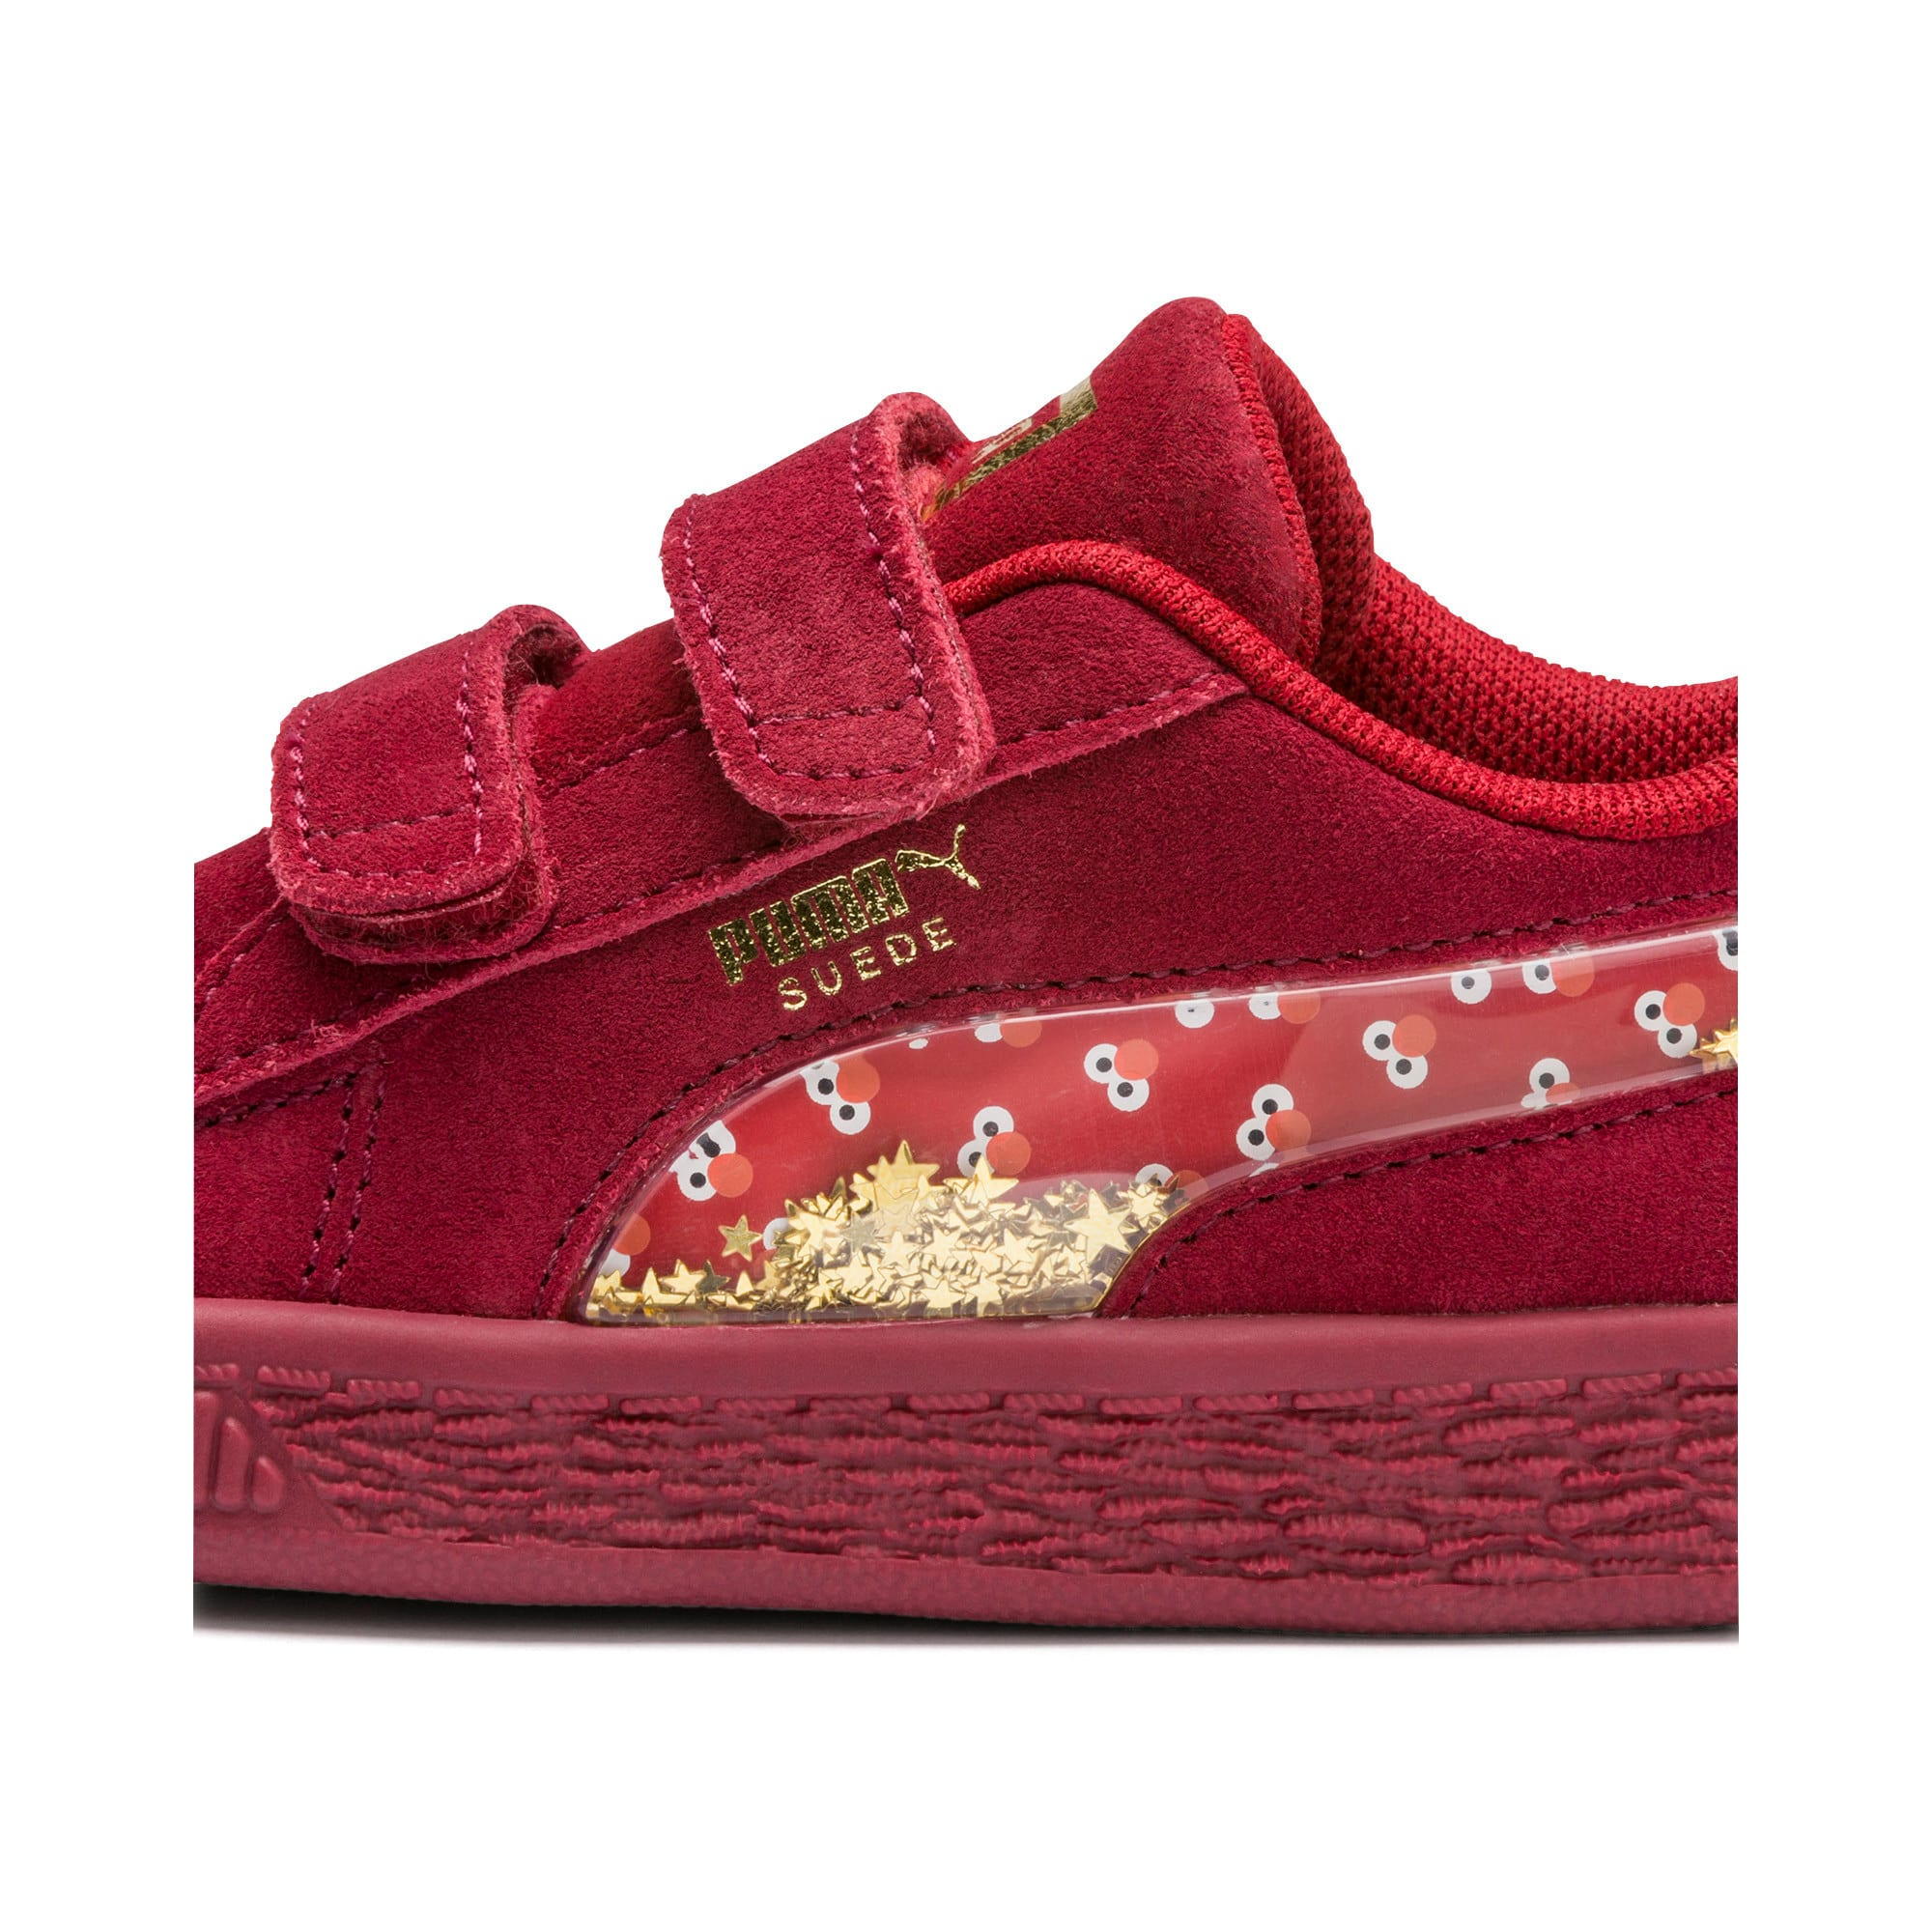 PUMA x SESAME STREET 50 Suede Statement Toddler Shoes, Rhubarb-Puma White, large